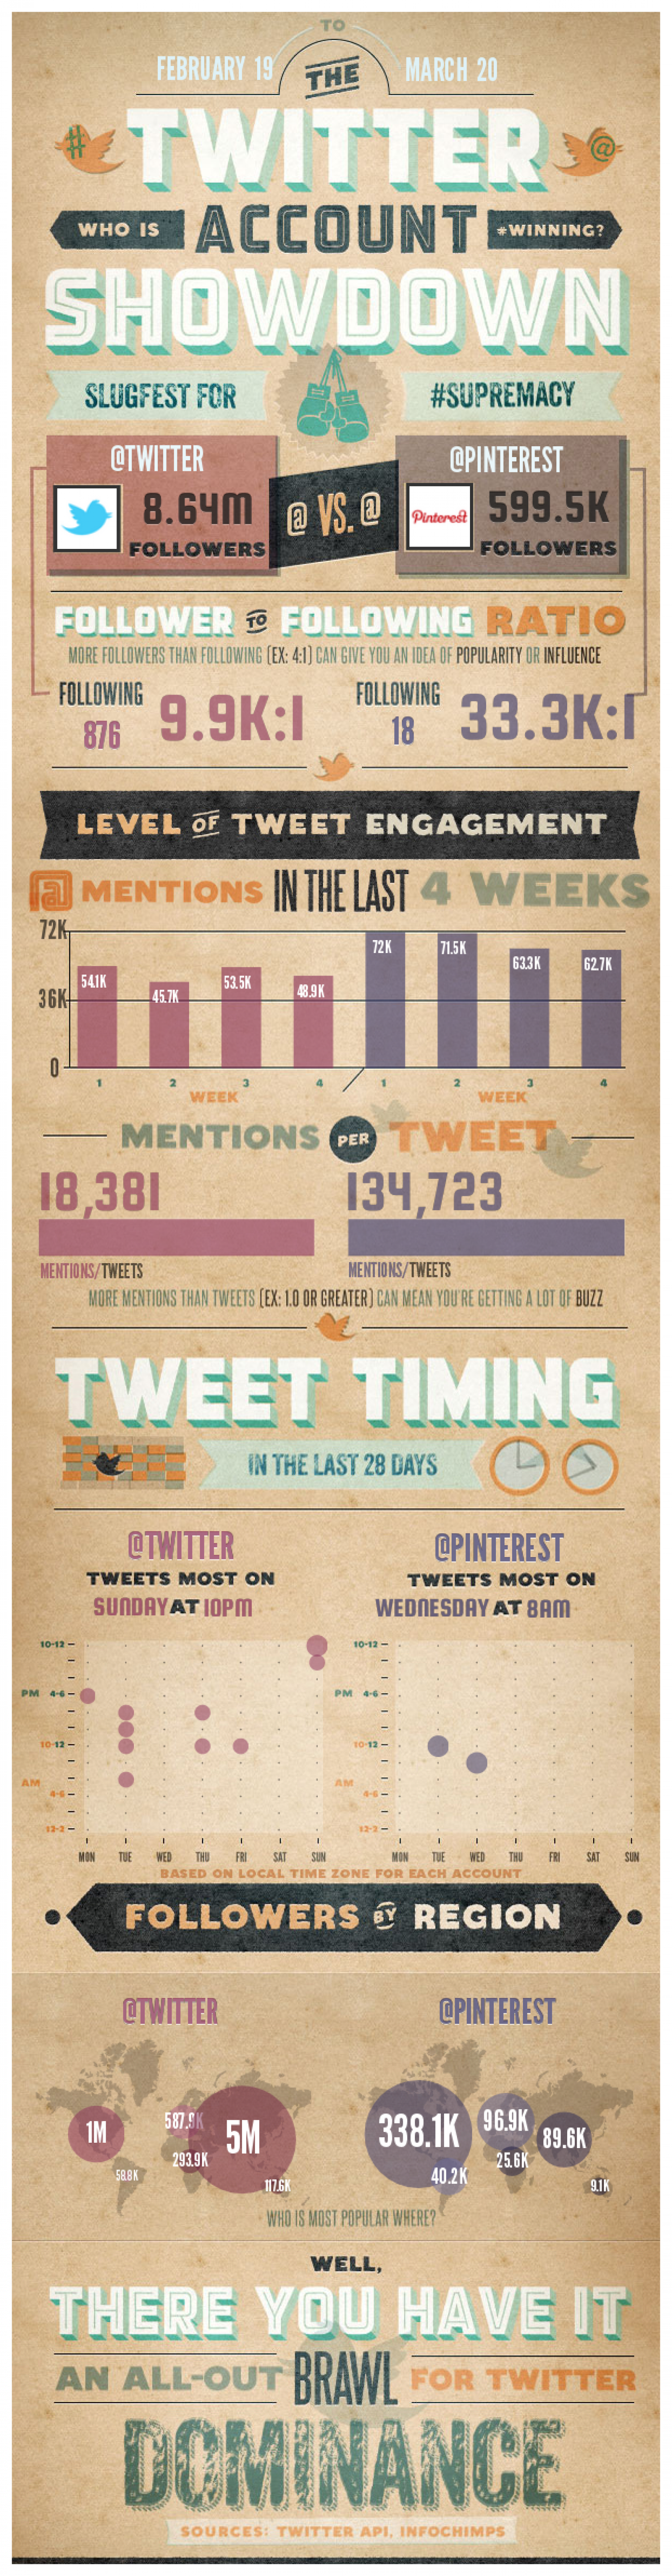 Twitter Vs Pinterest Infographic